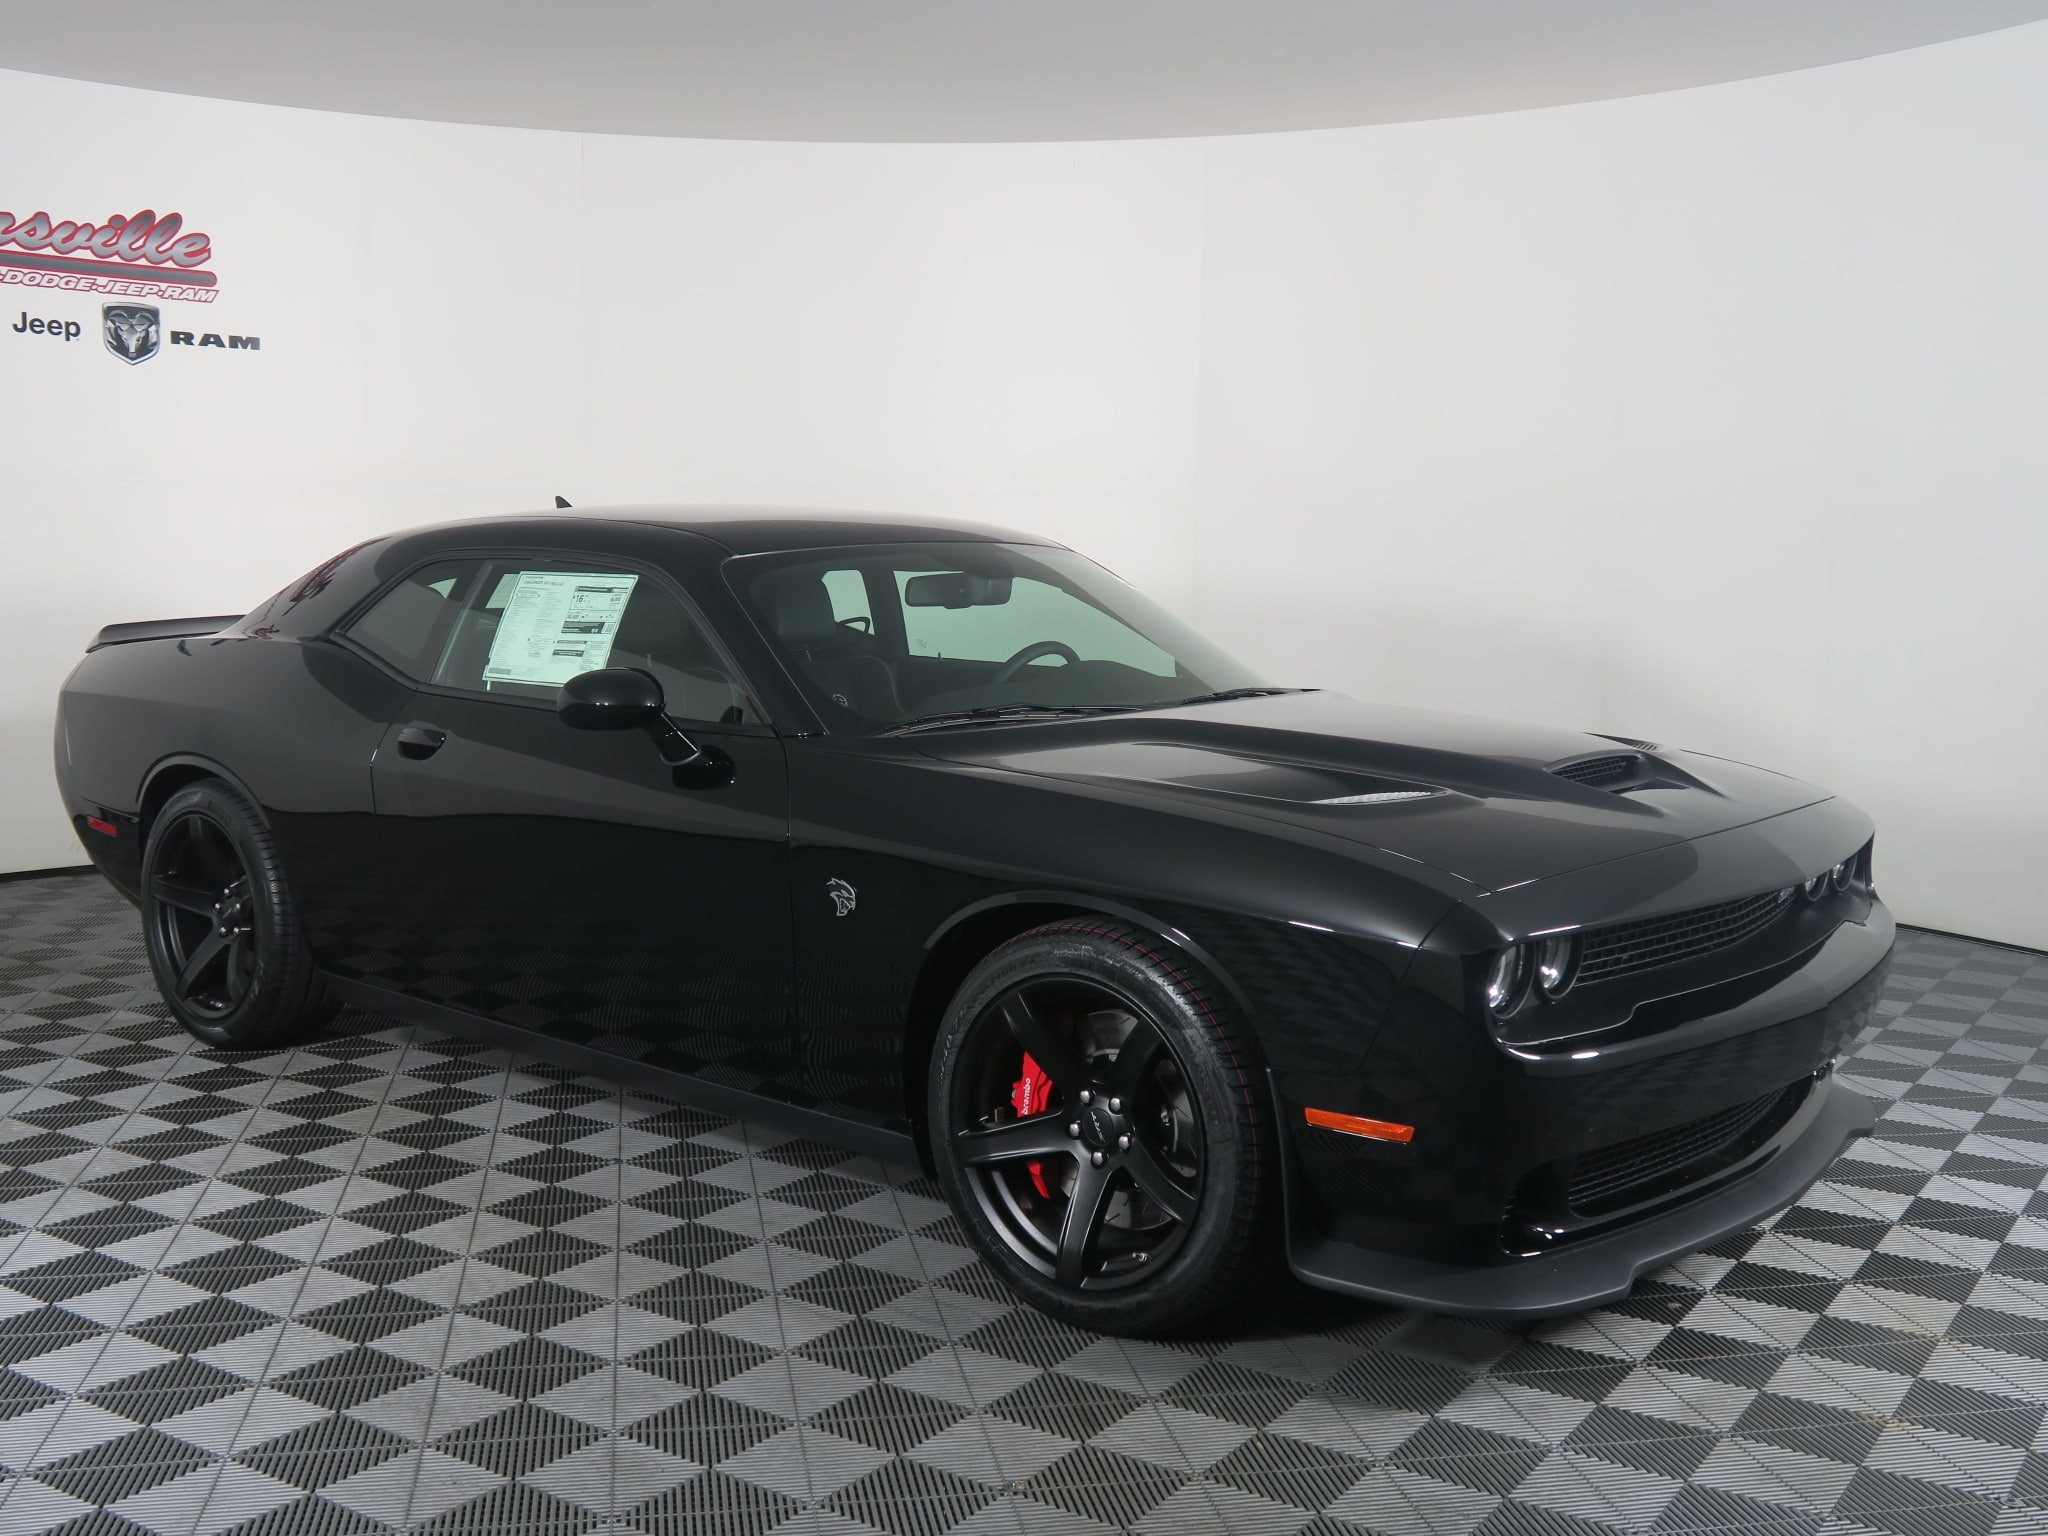 Dodge Charger Srt 392 For Sale >> 2018 Dodge Challenger Black Wallpapers (74+ background ...